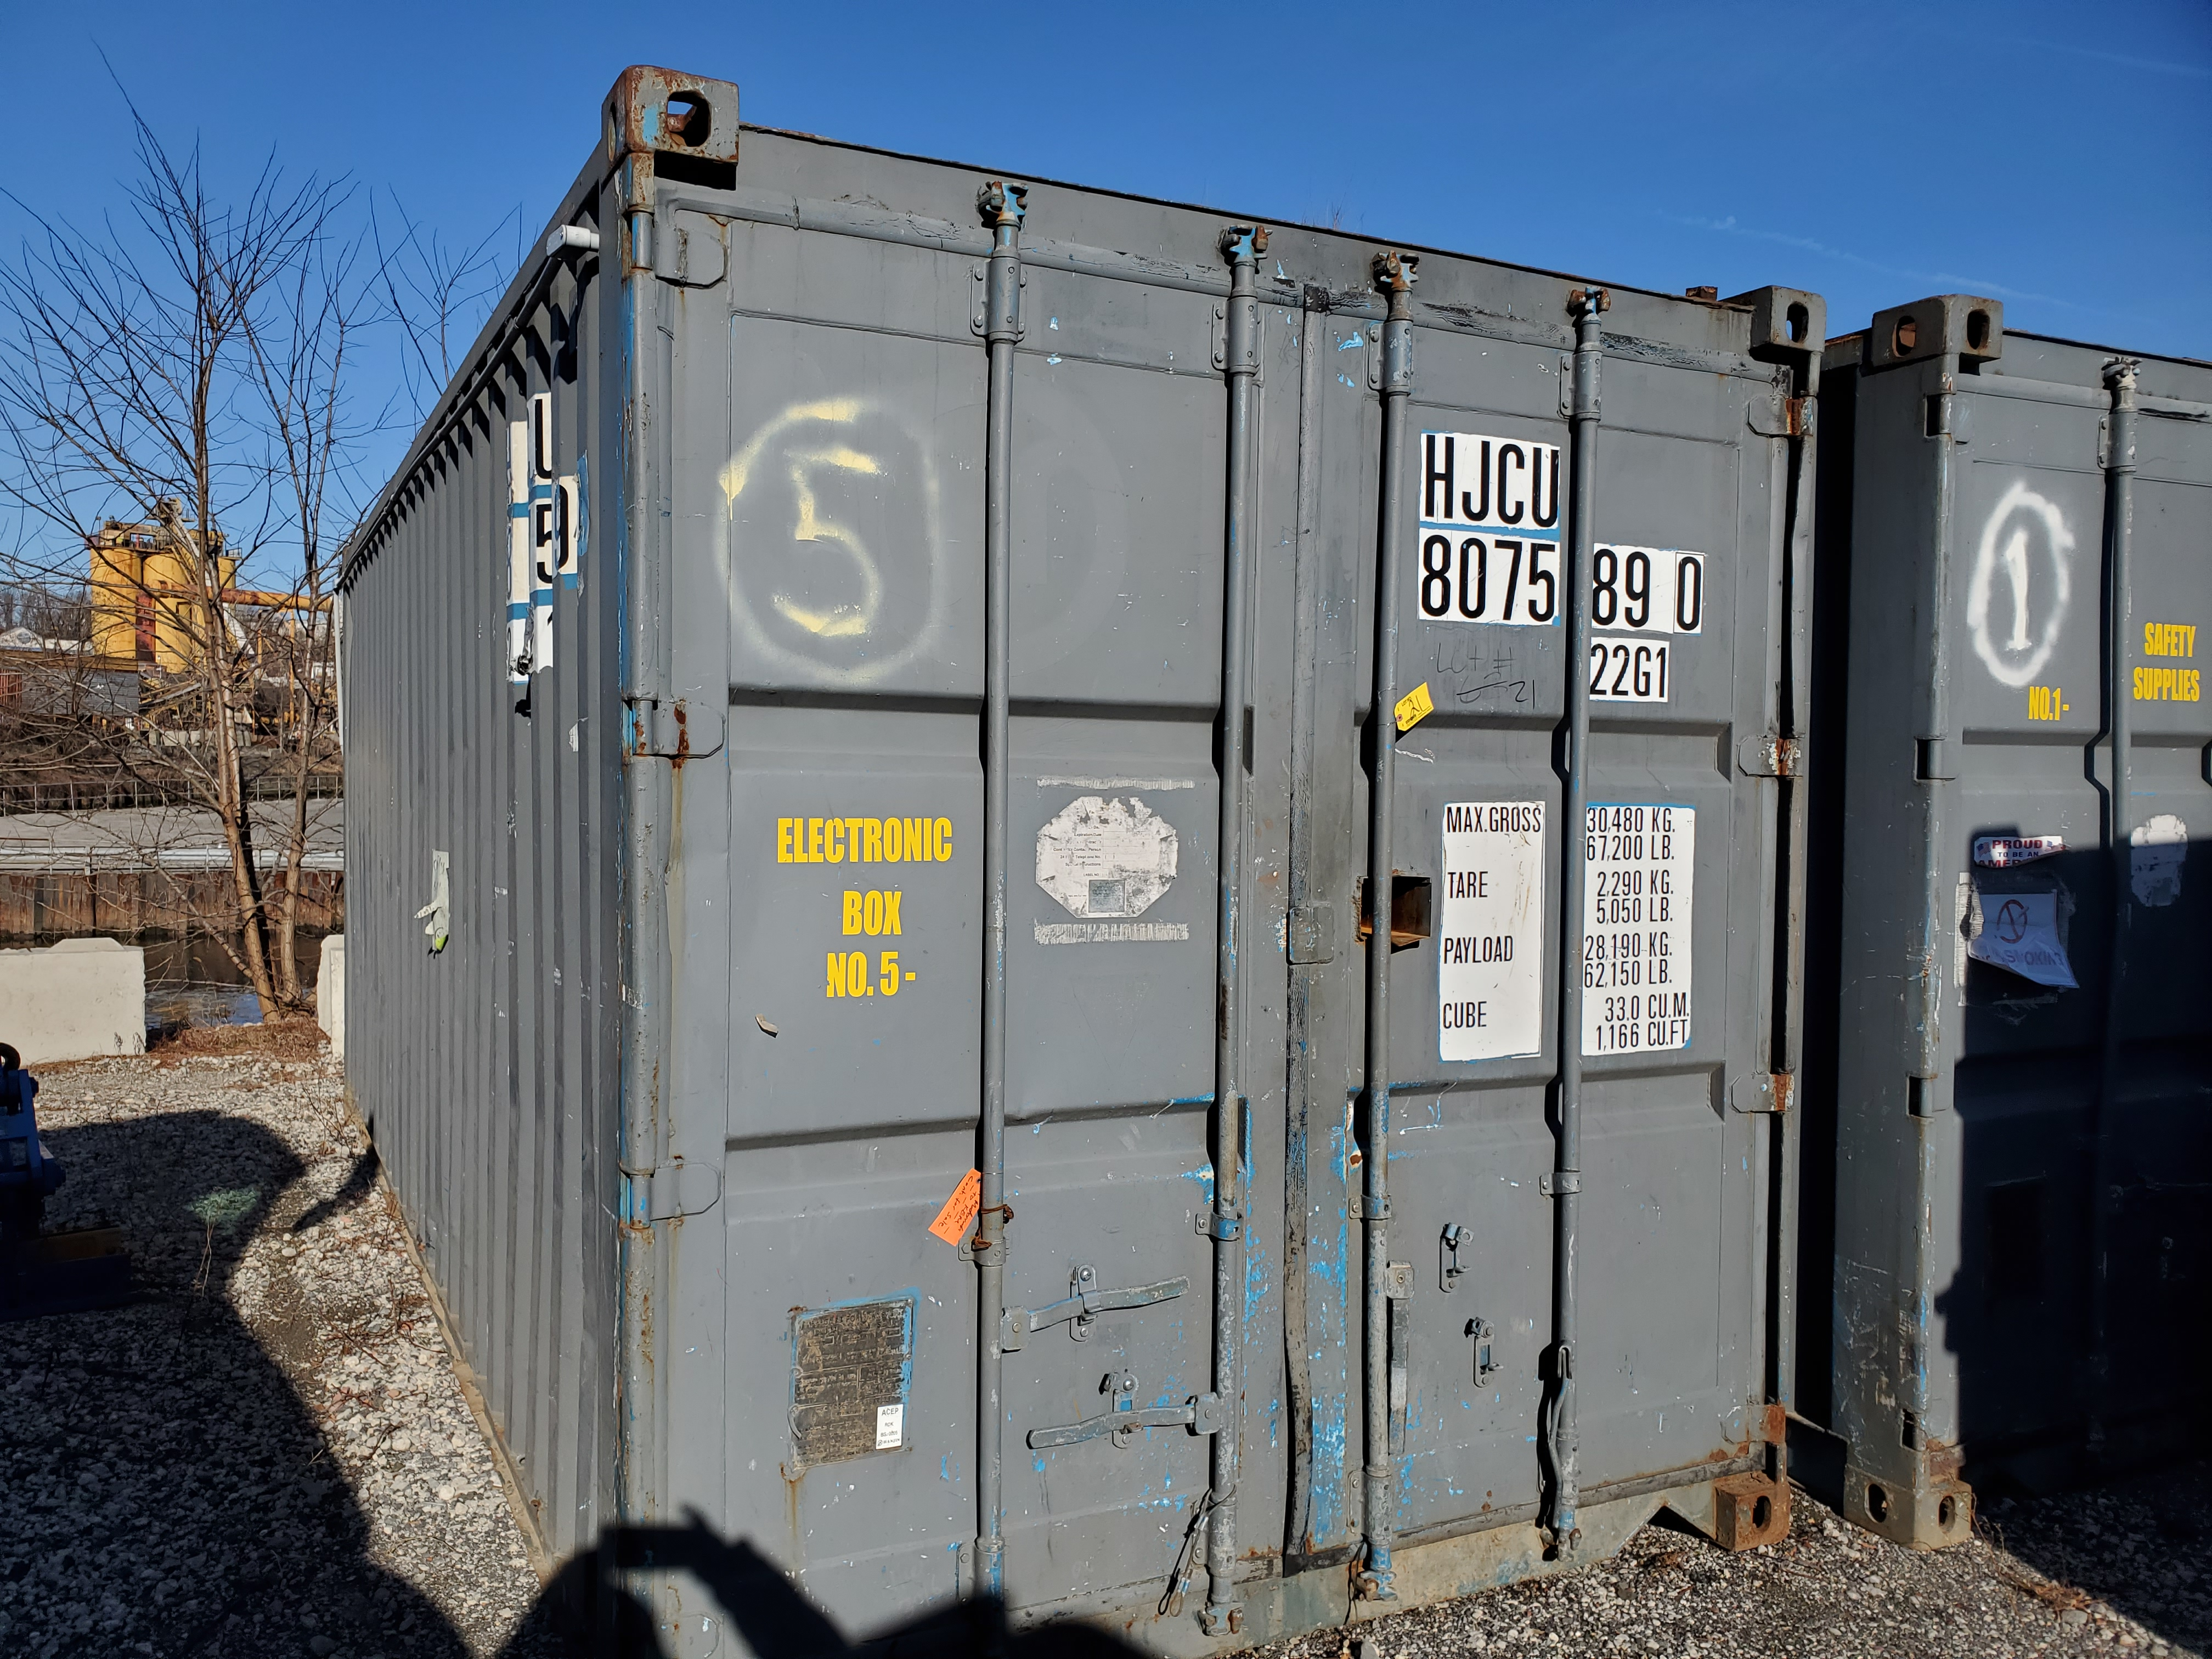 Lot 21 - 20' SHIPPING CONTAINER [LOCATED @ 6 CANAL ROAD, PELHAM, NY (BRONX)]